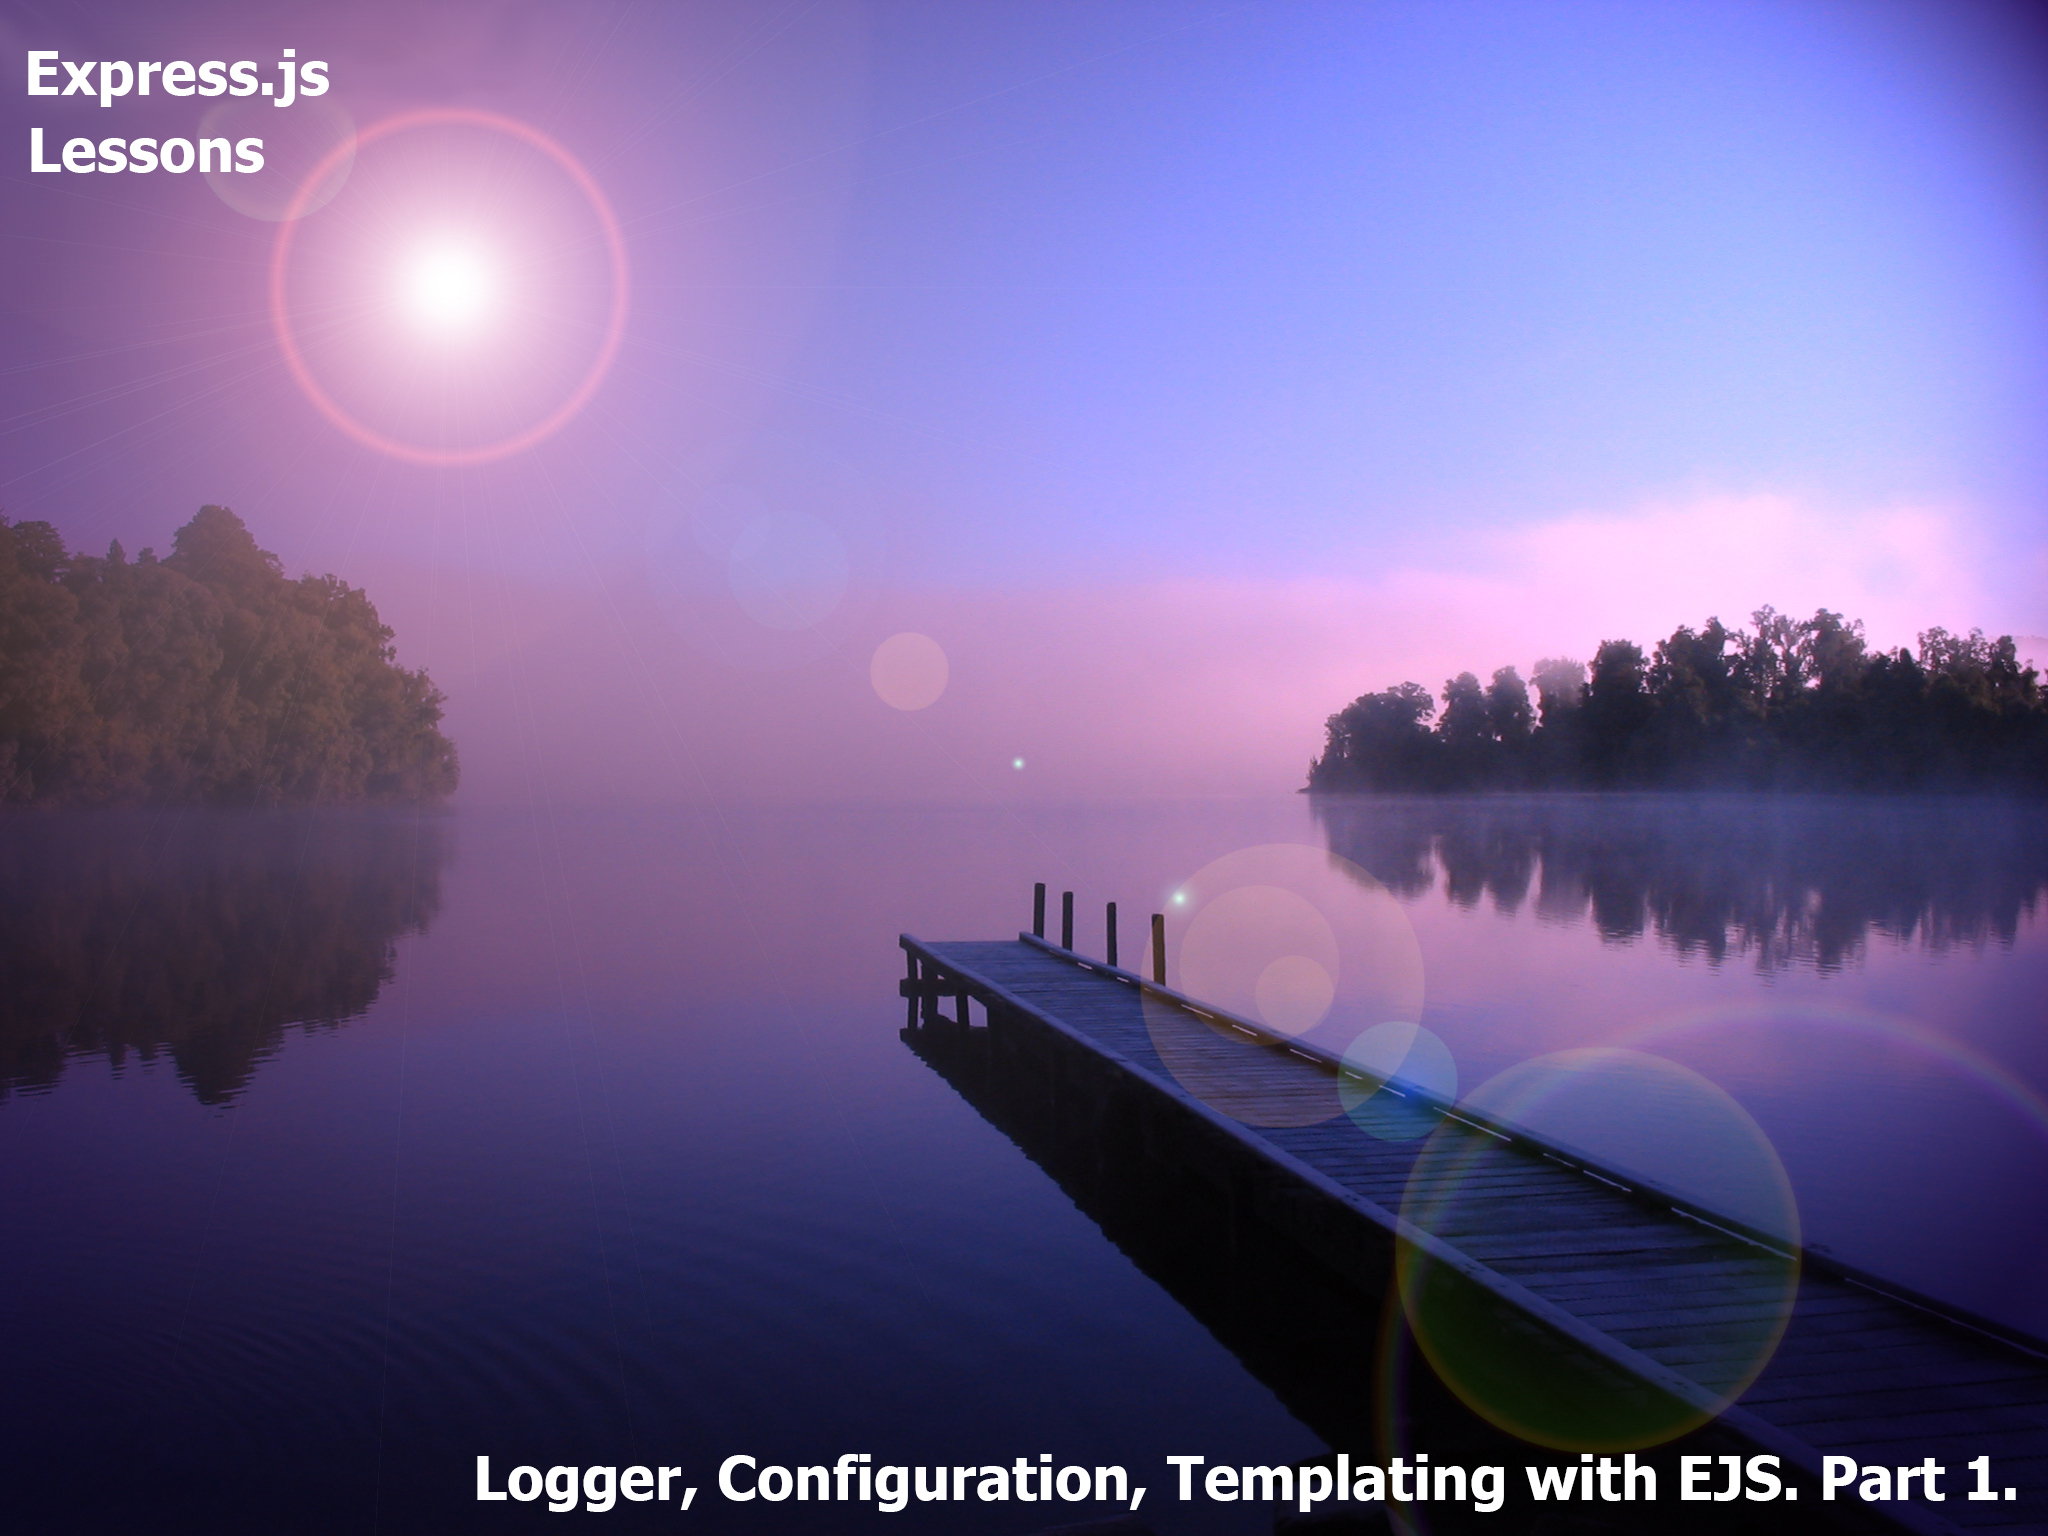 2  Express js Lessons  Logger, Configuration, Templating